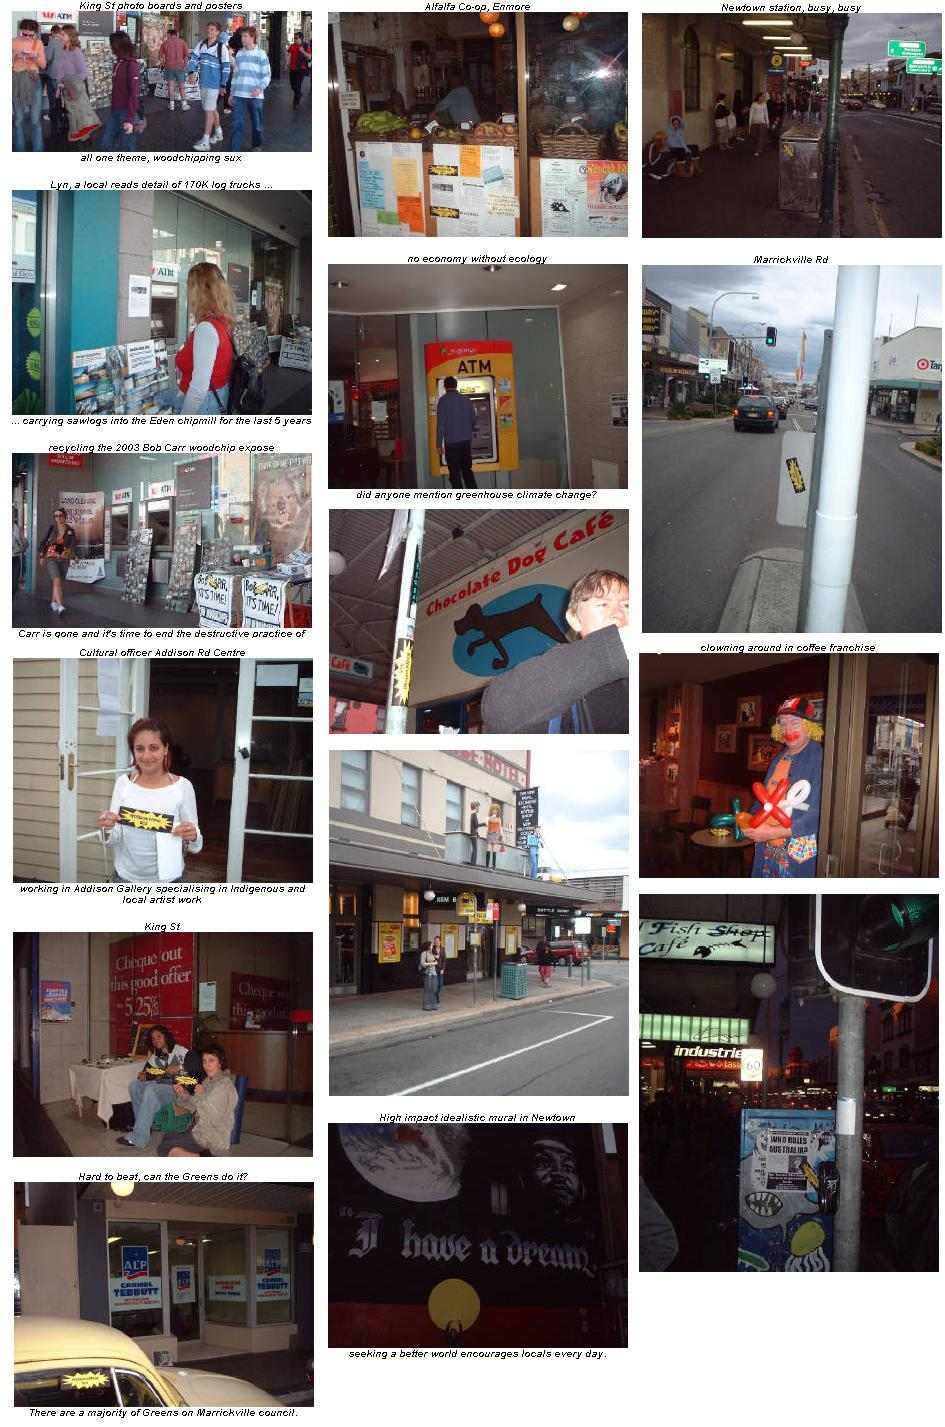 marrickvillebyelection2005no2.jpg